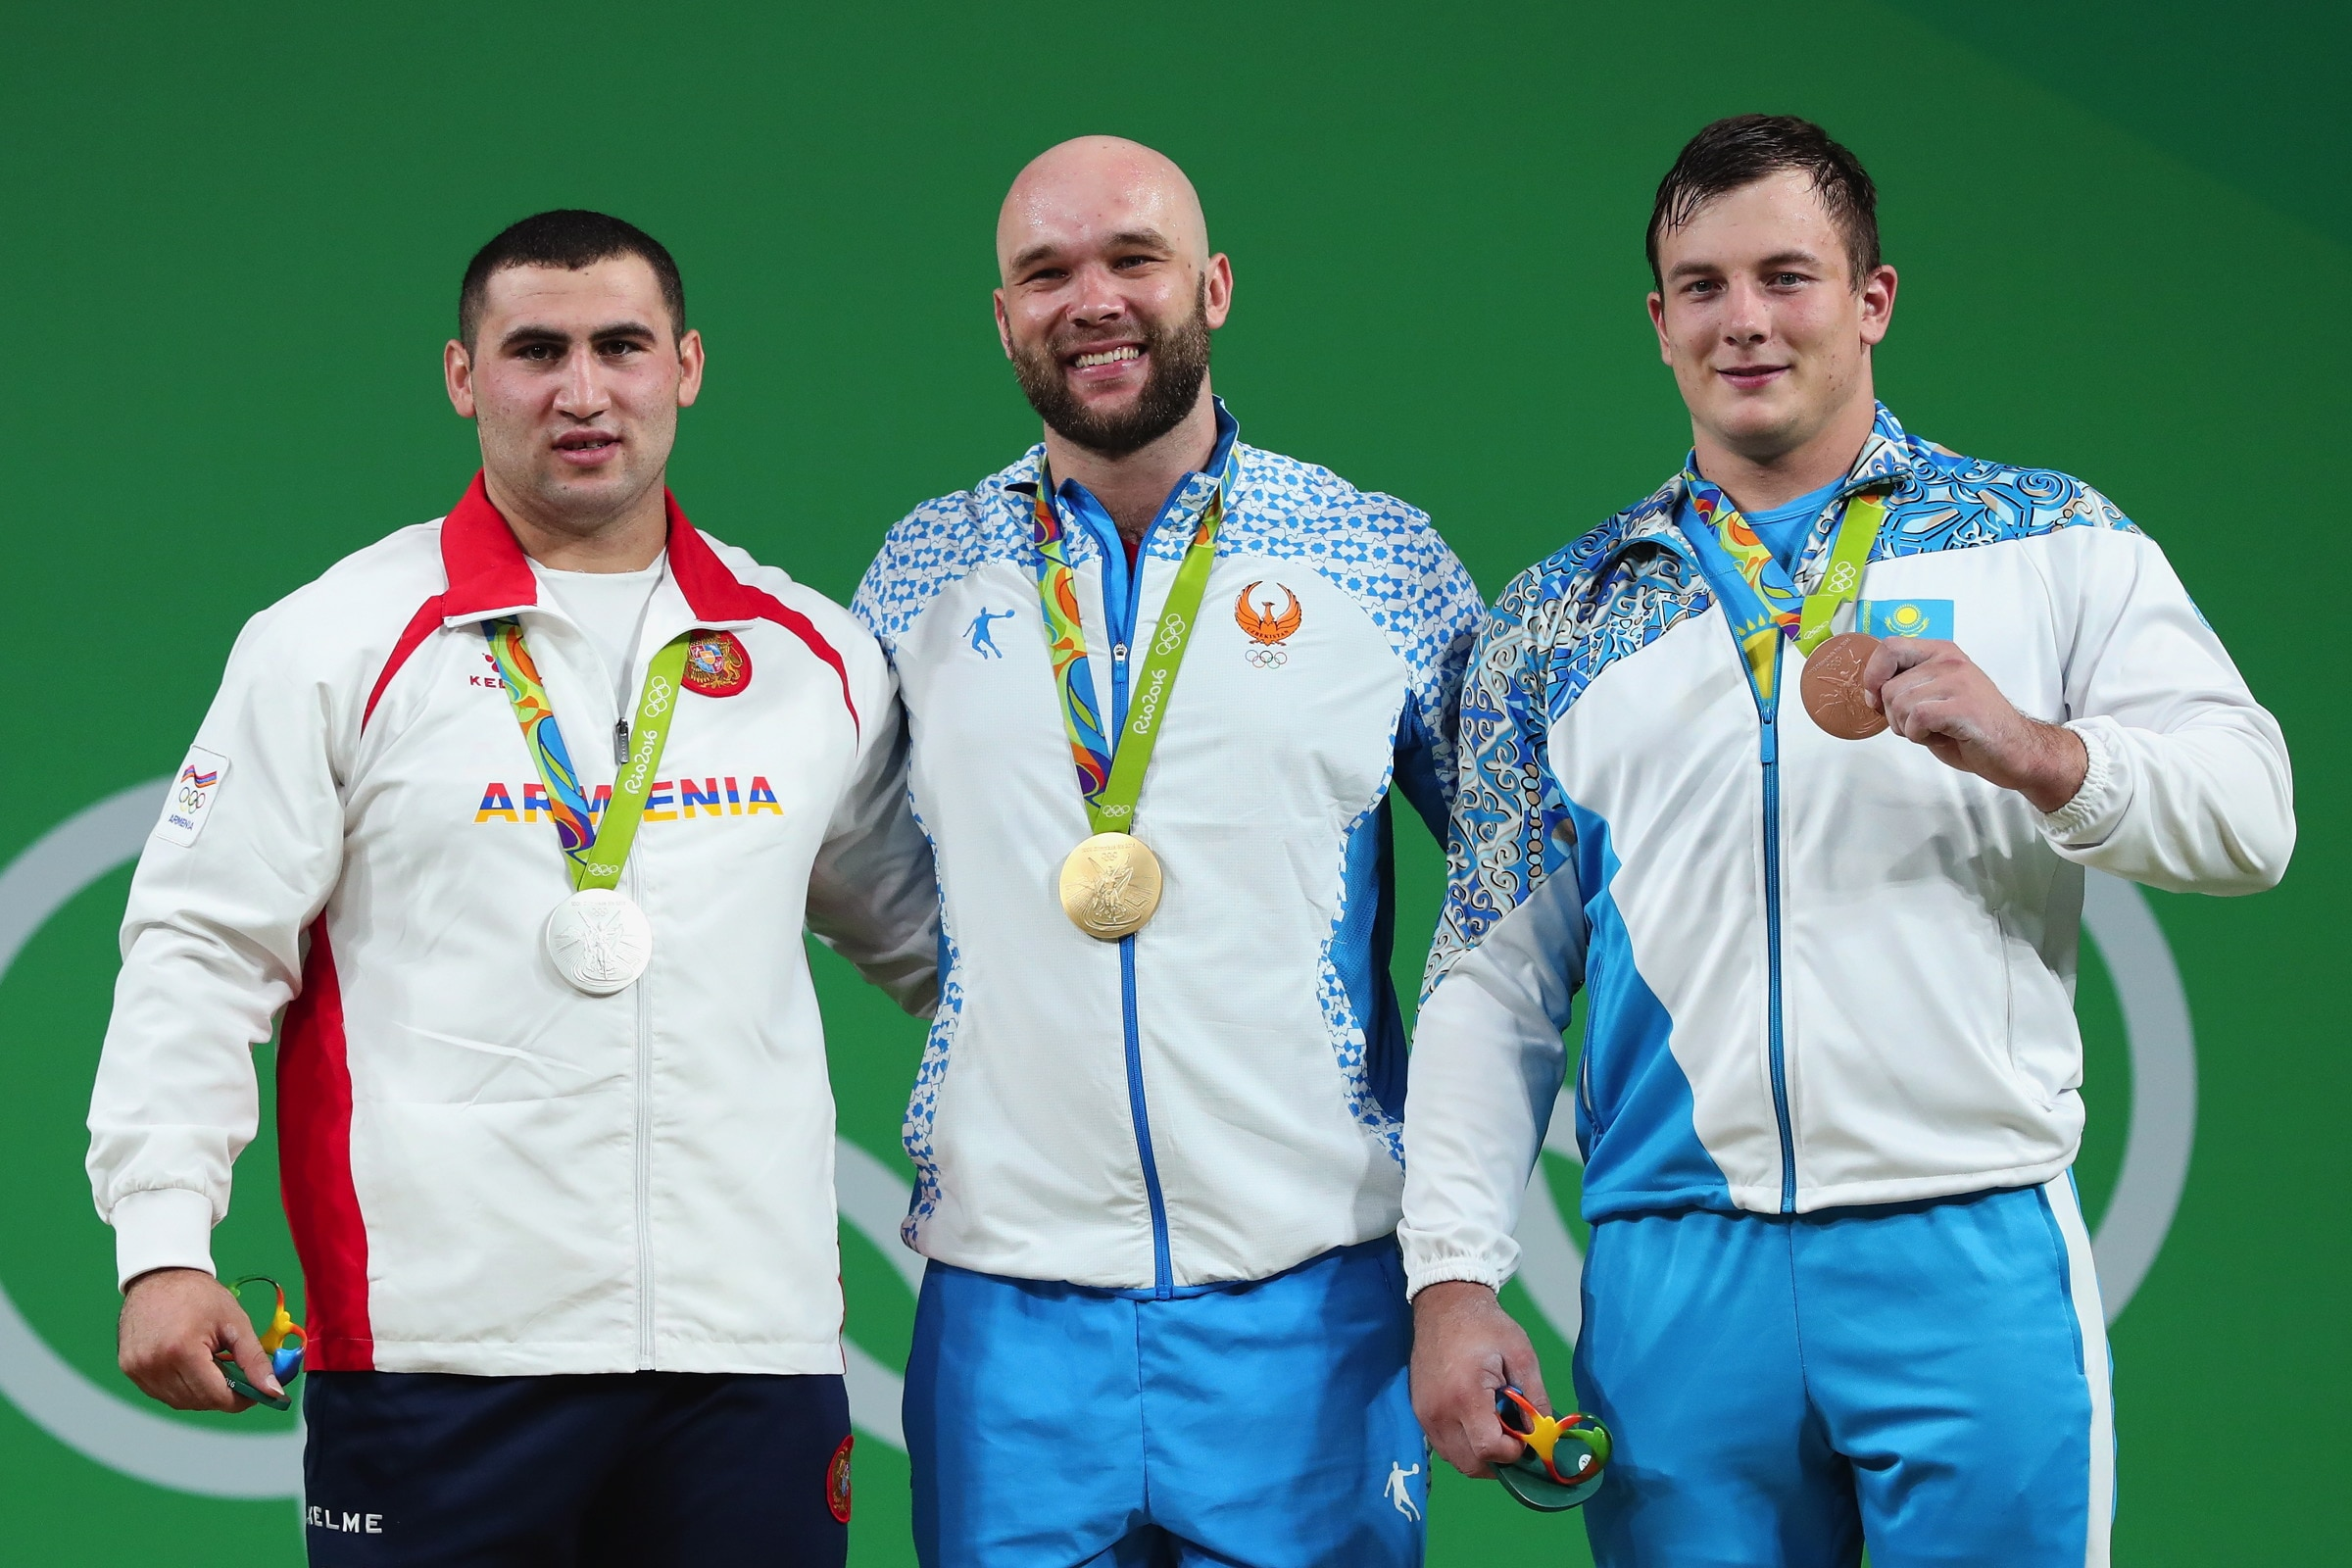 Weightlifting - Men's 105kg